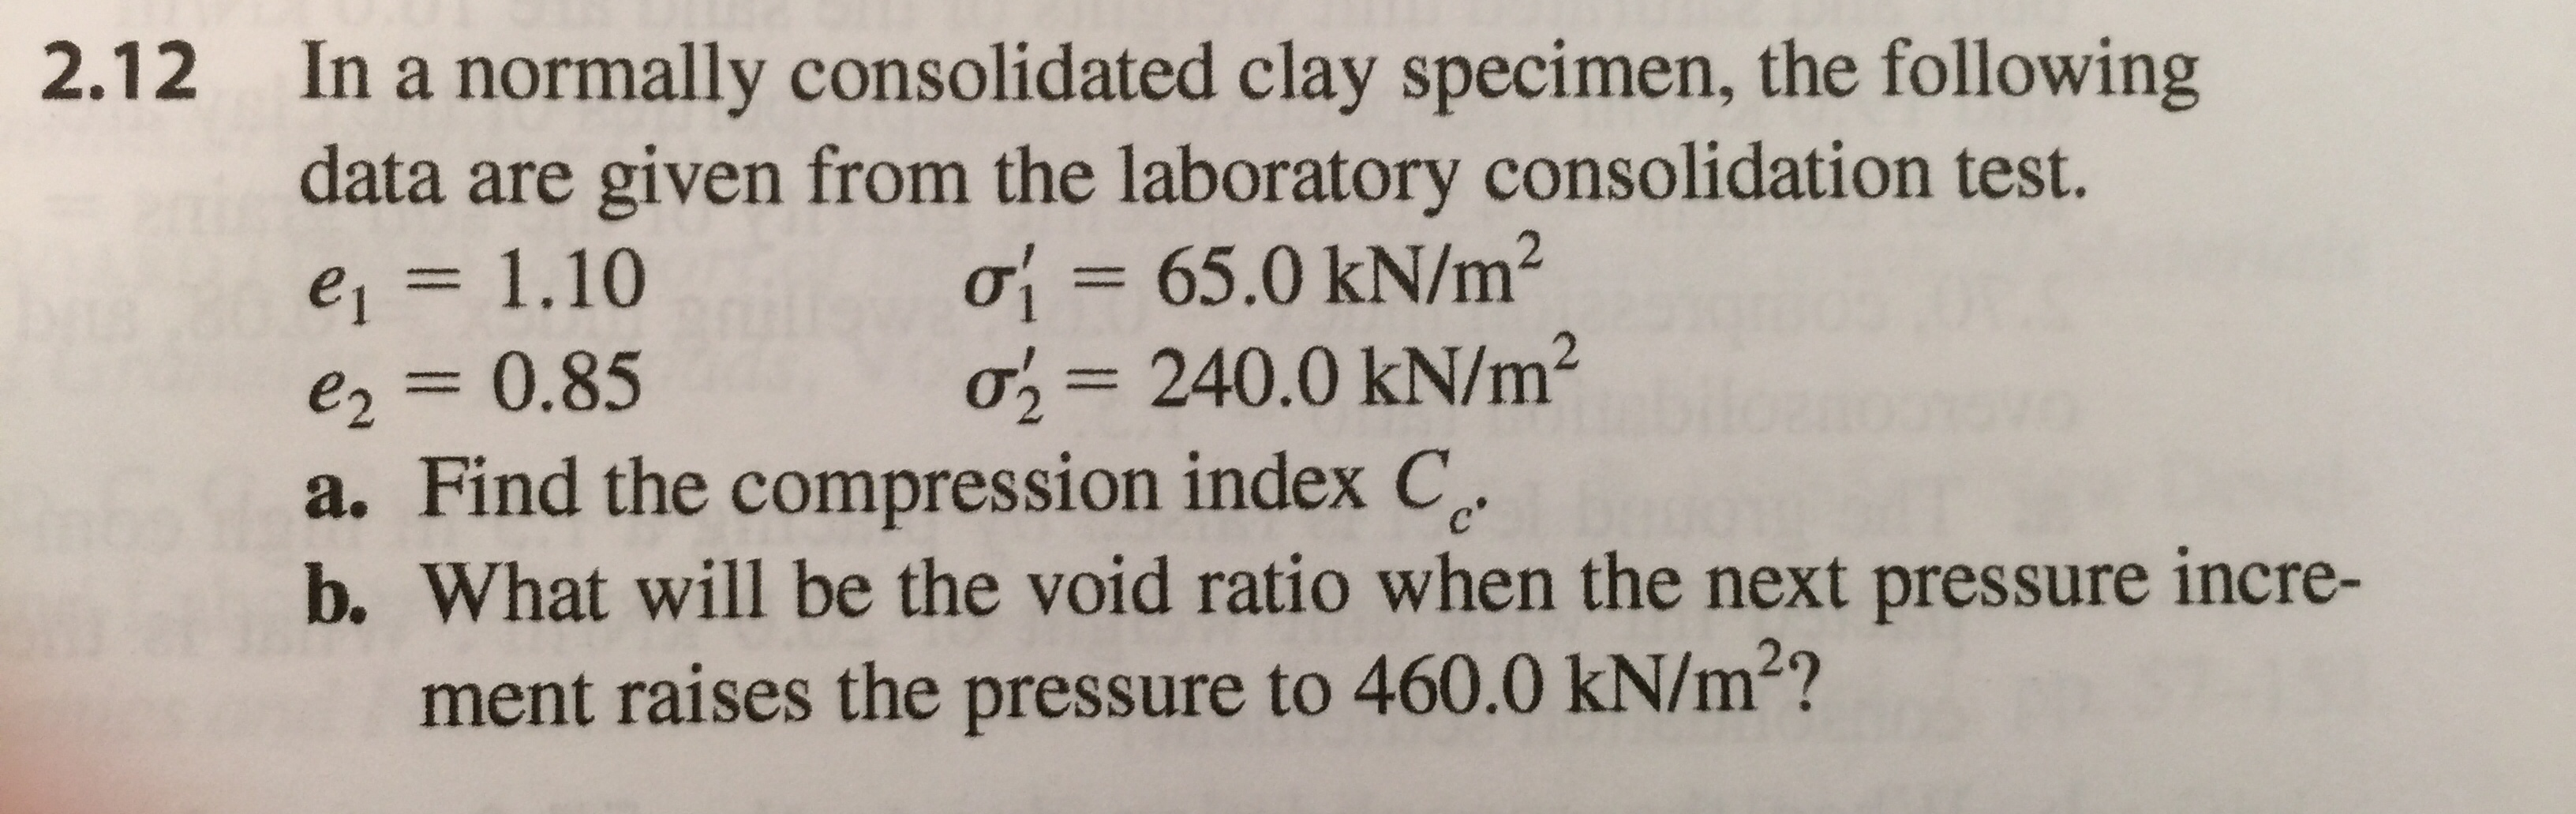 In a normally consolidated clay specimen, the following are given from the laboratory consolidation test. ơ -65.0 kN/m2 o 240.0 kN/m2 2.12 data e2 0.85 a. Find the compression index C b. What will be the void ratio when the next pressure incre- ment raises the pressure to 460.0 kN/m2?